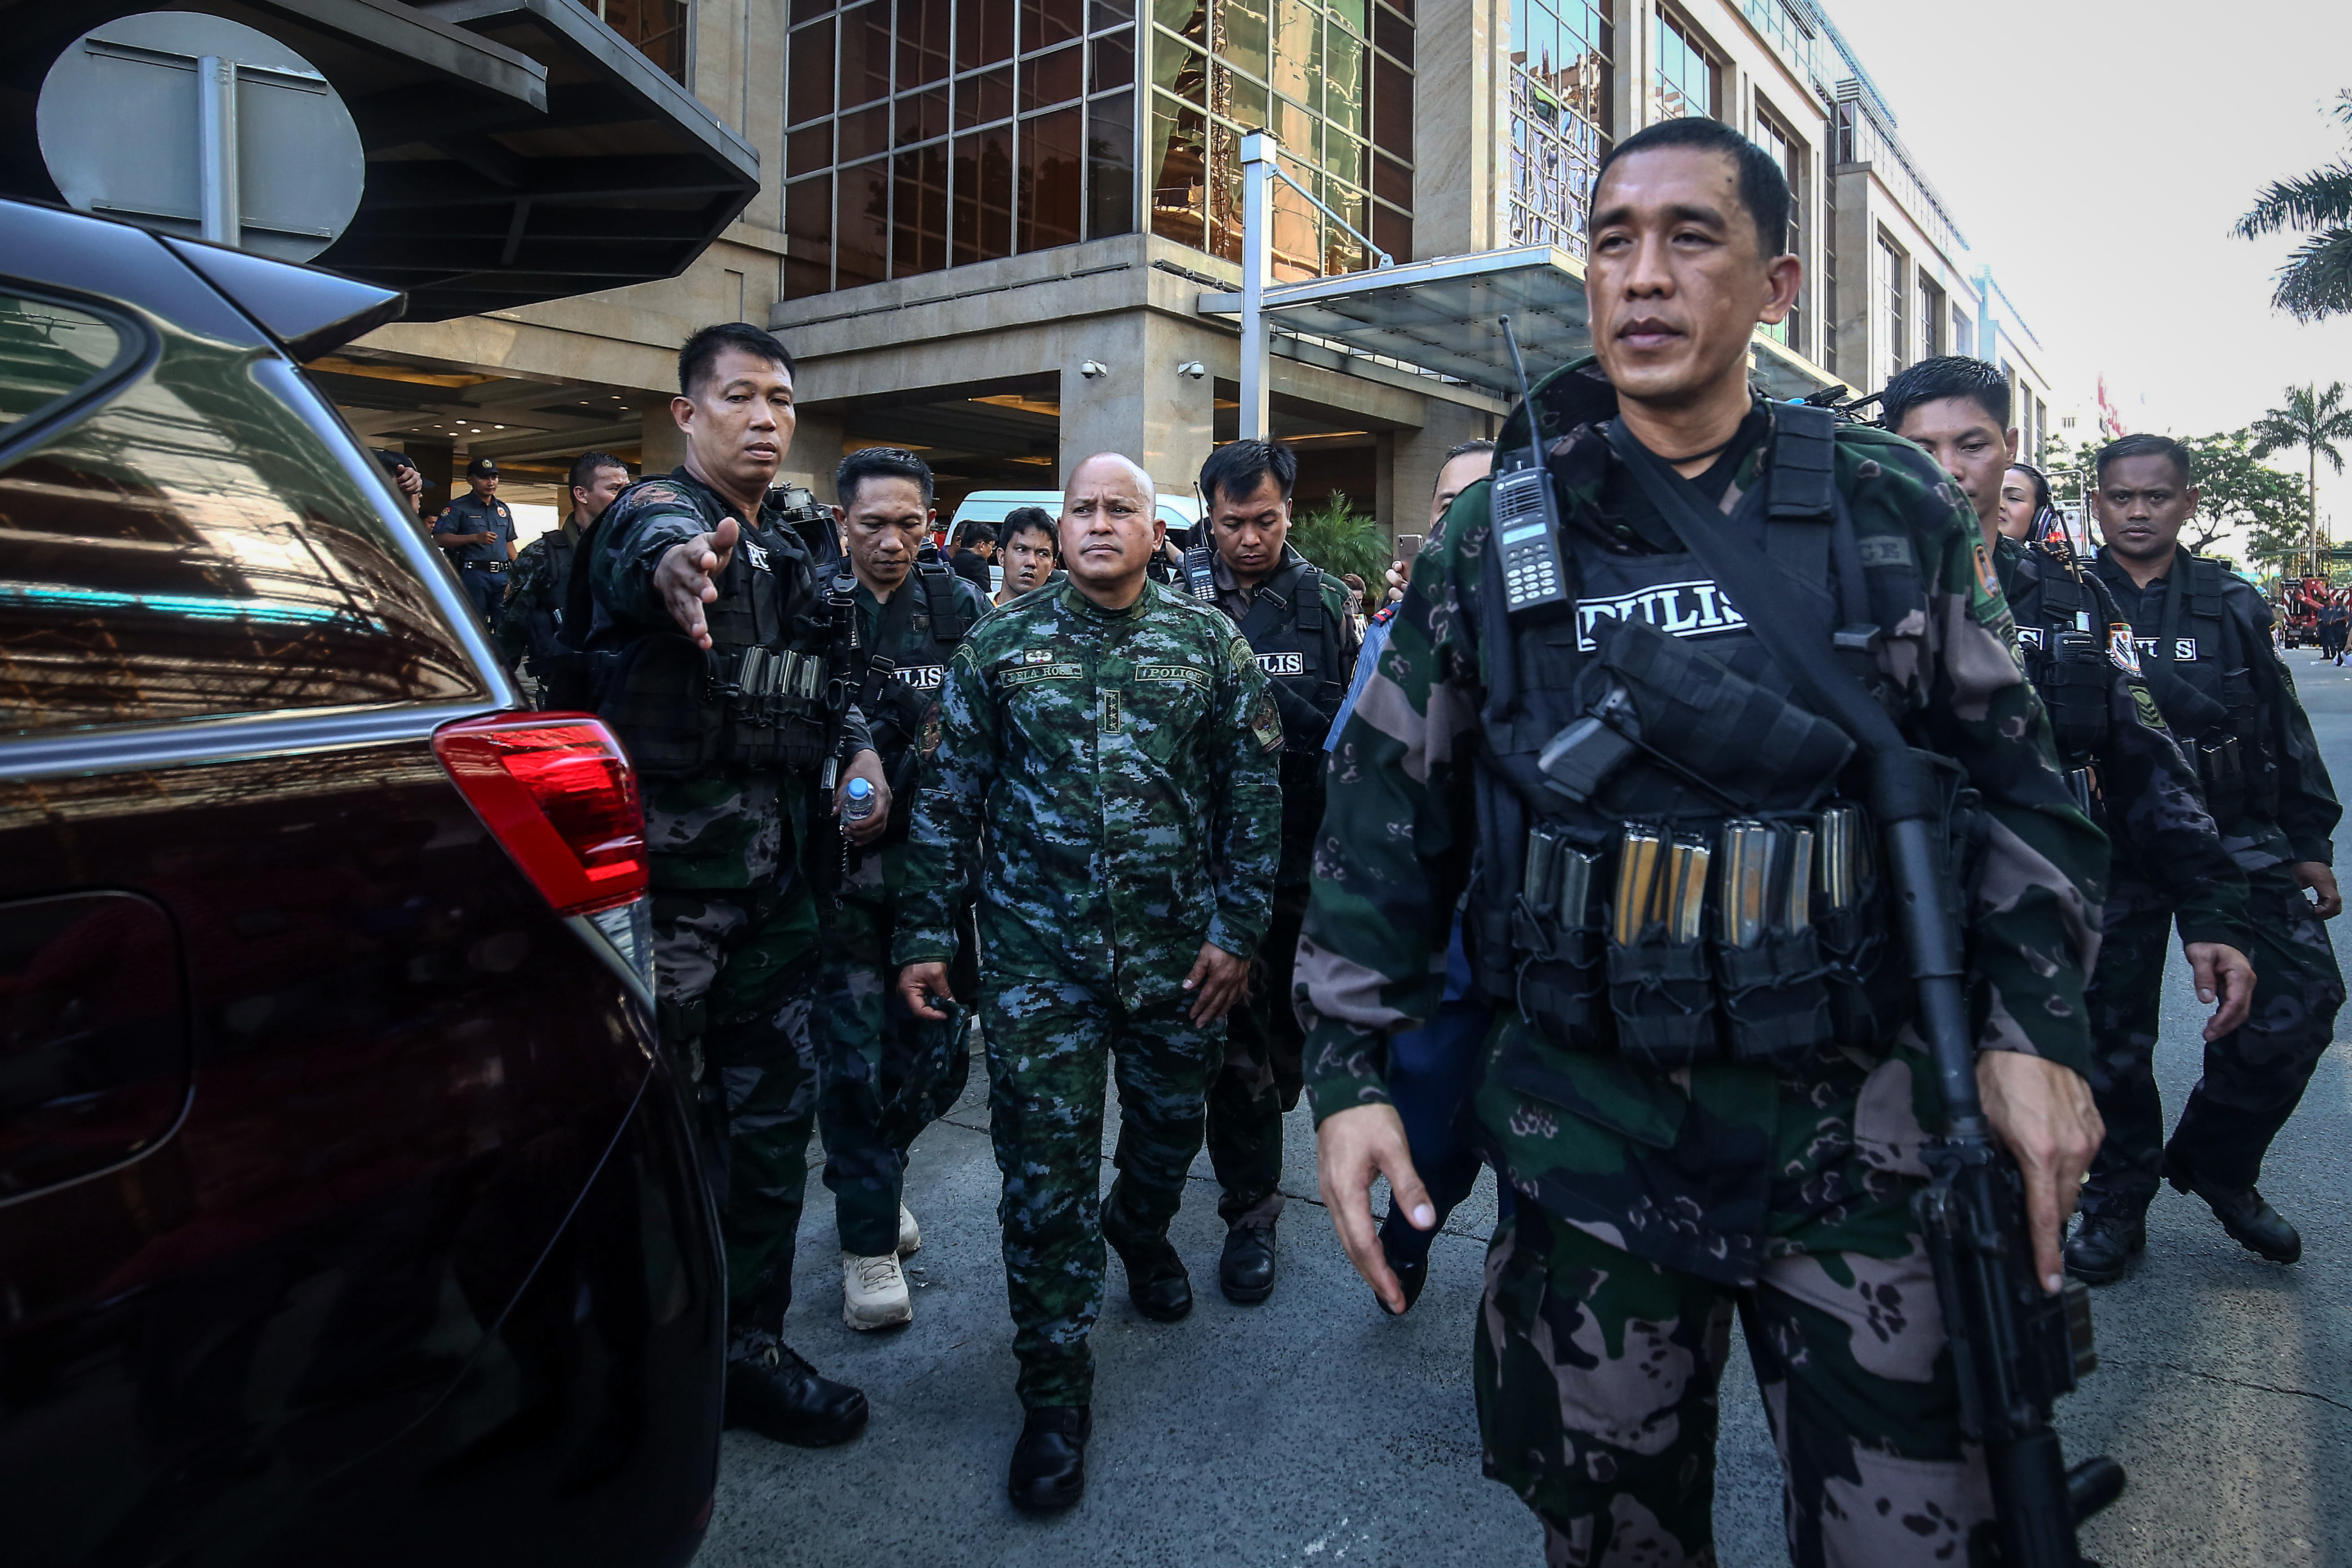 ON THE SCENE. PNP Chief Ronald Dela Rosa deploys additional police in the vicinity of the Resorts World Manila. Photo by Ben Nabong/Rappler